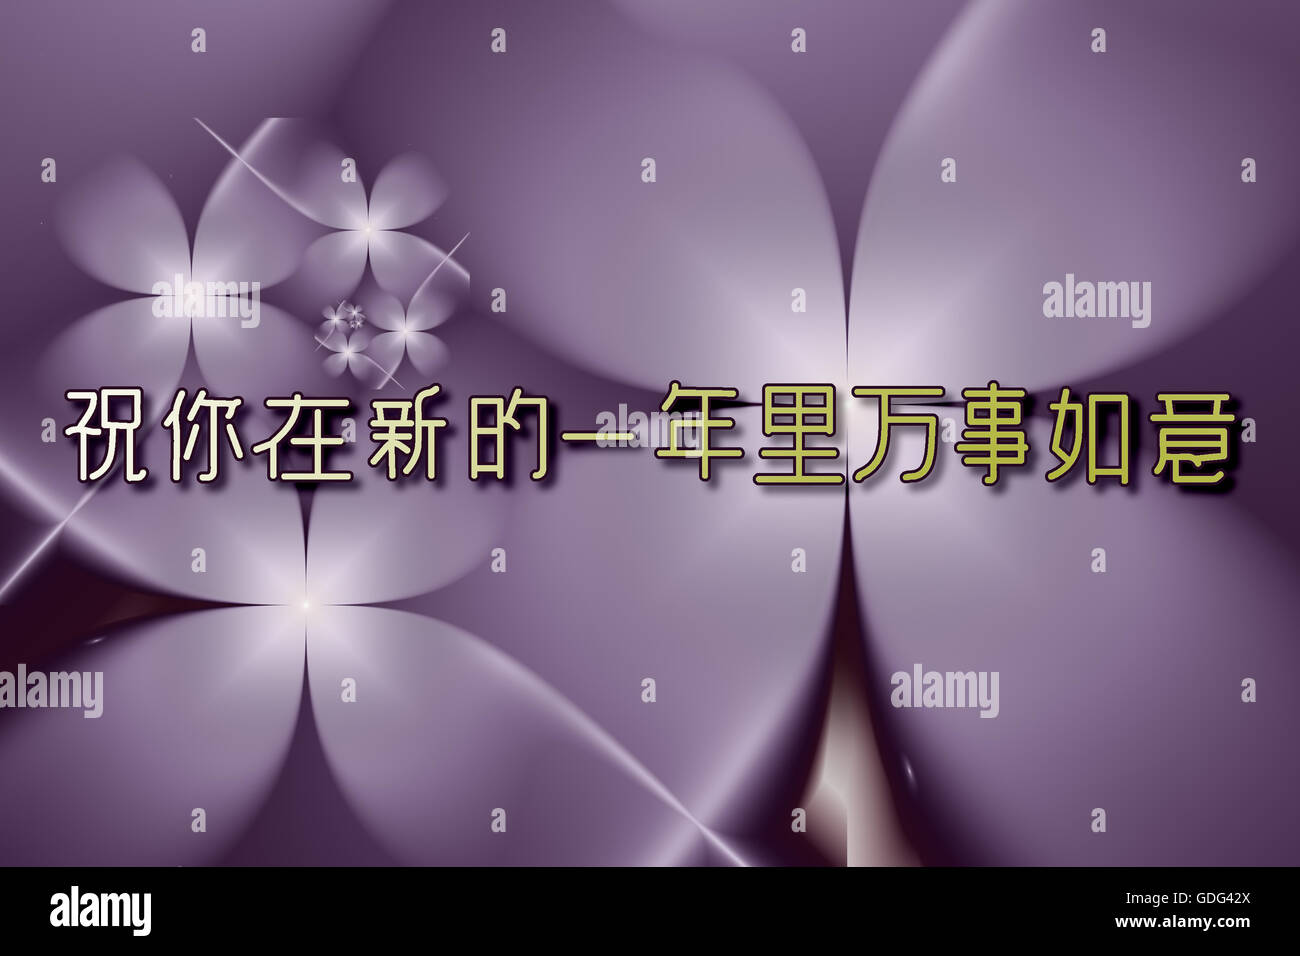 Wishes of prosperous new year written in Chinese characters on vivid purple floral design. - Stock Image